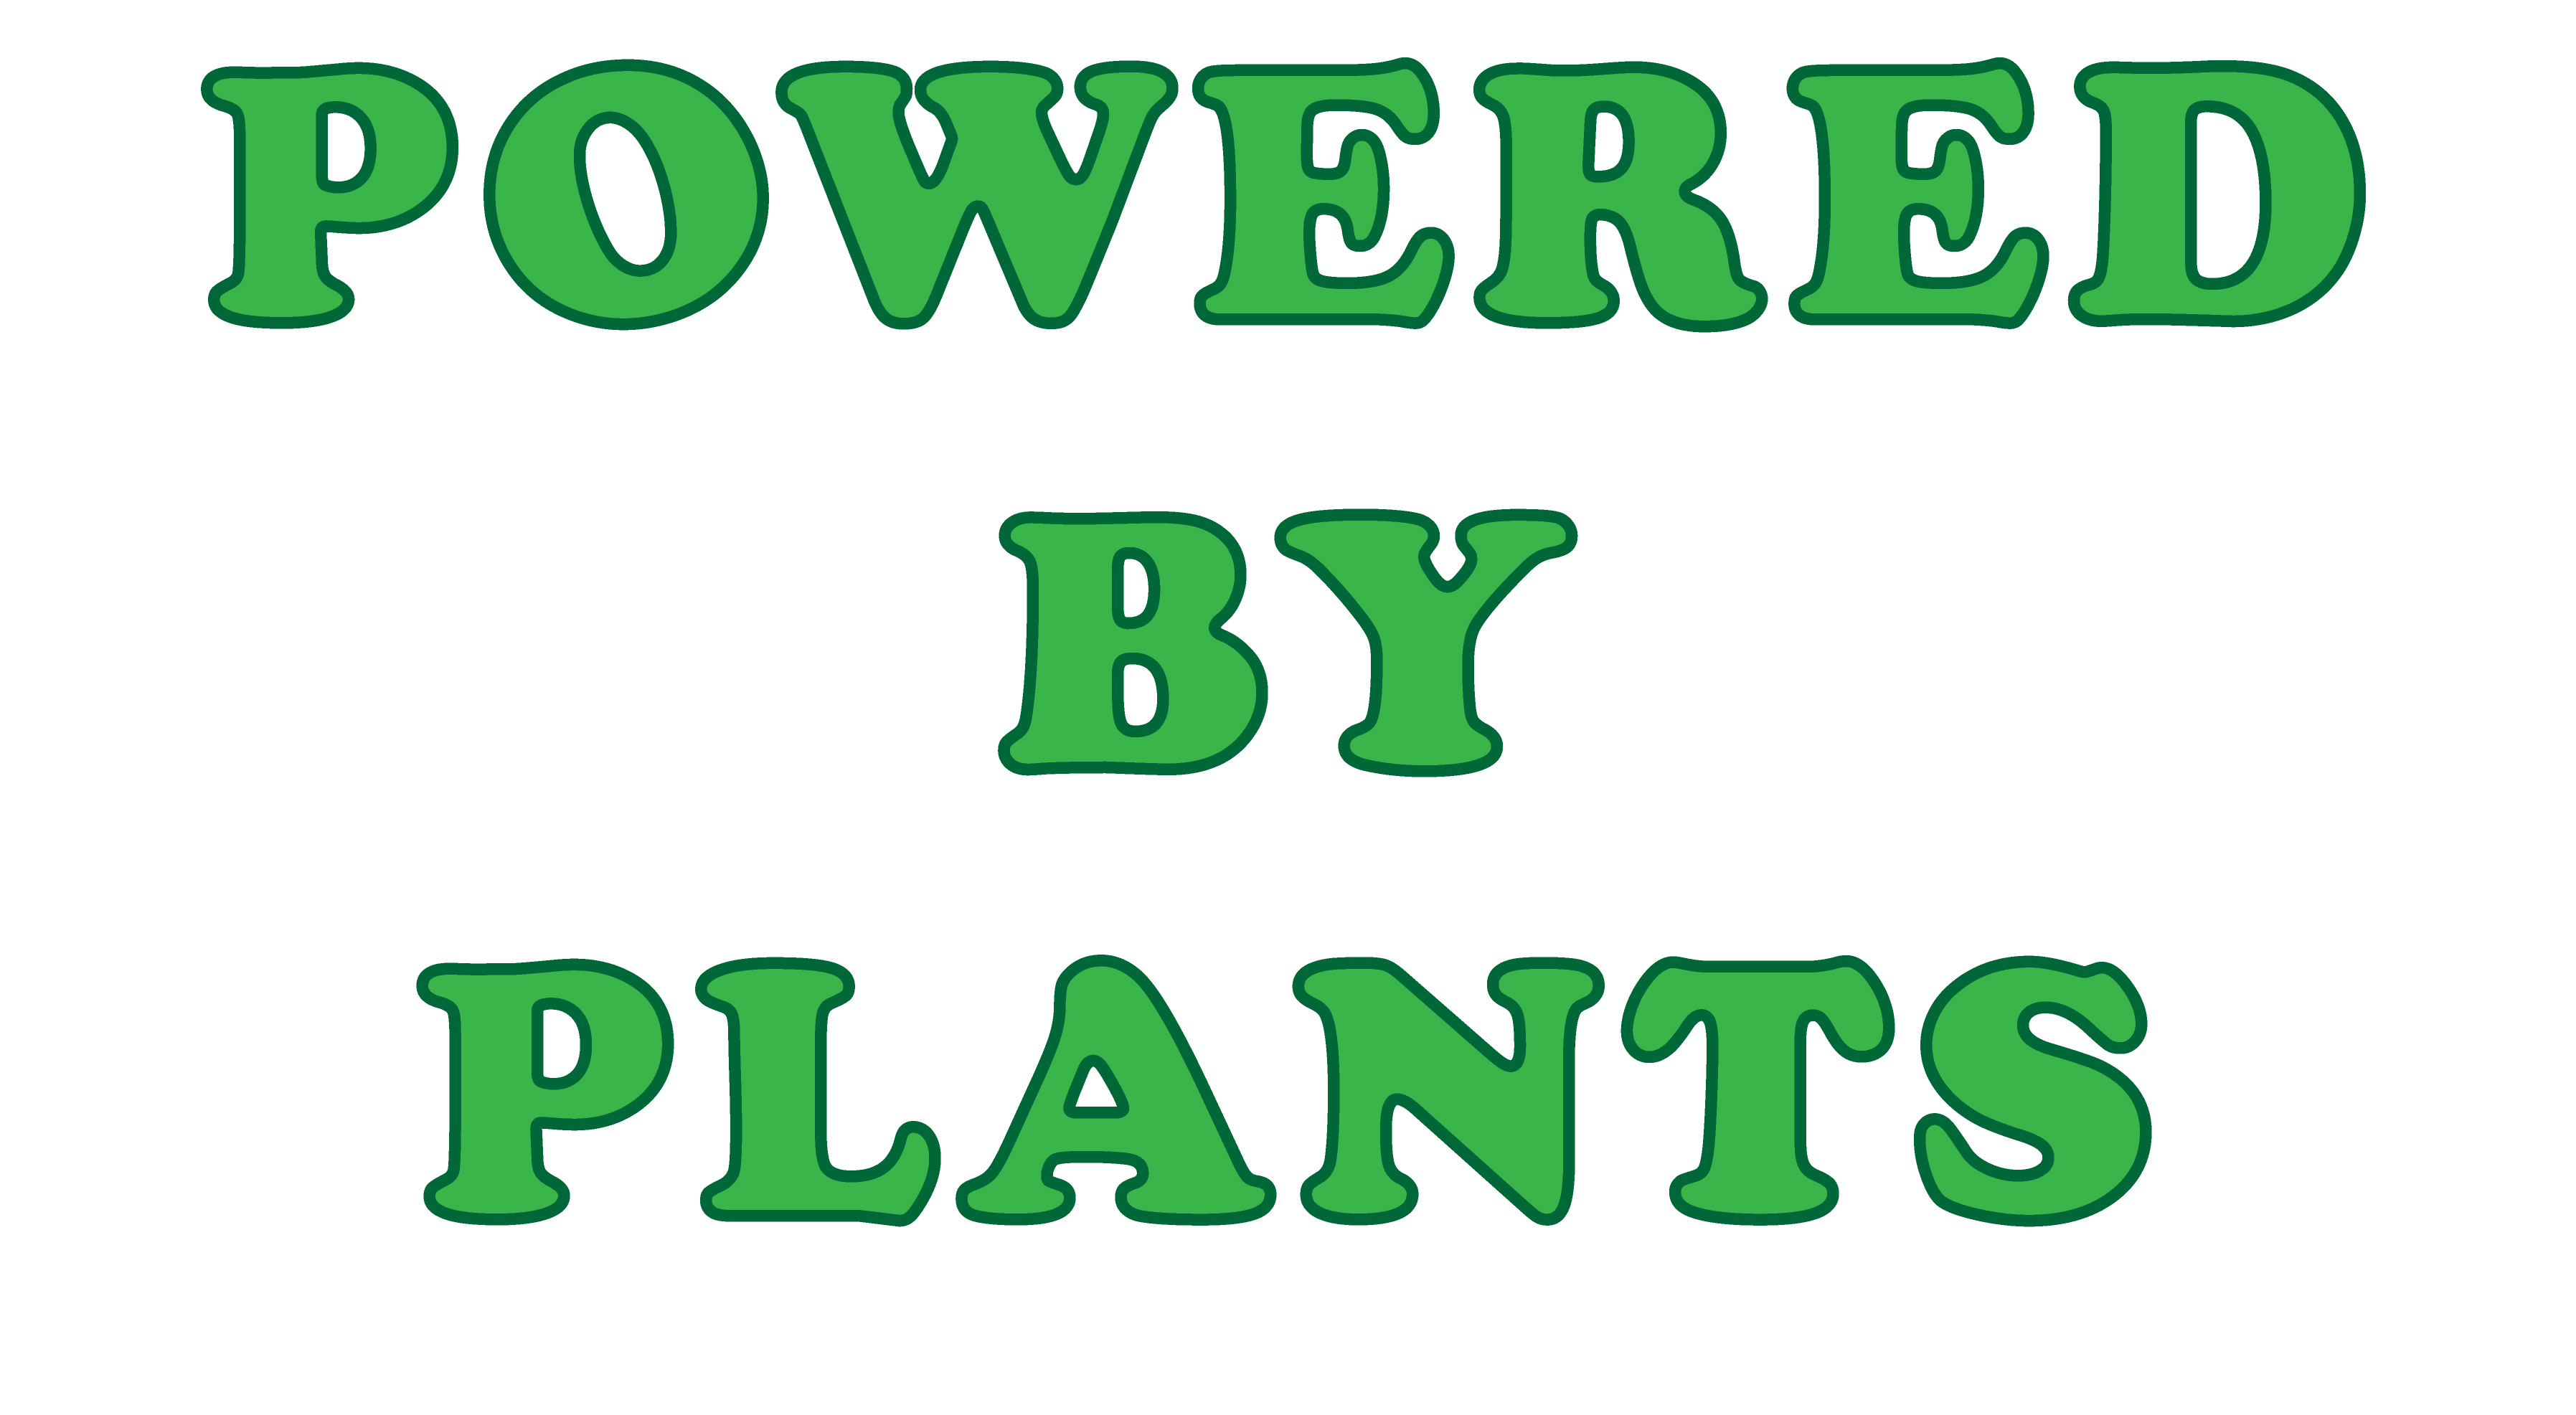 Poweredbyplants